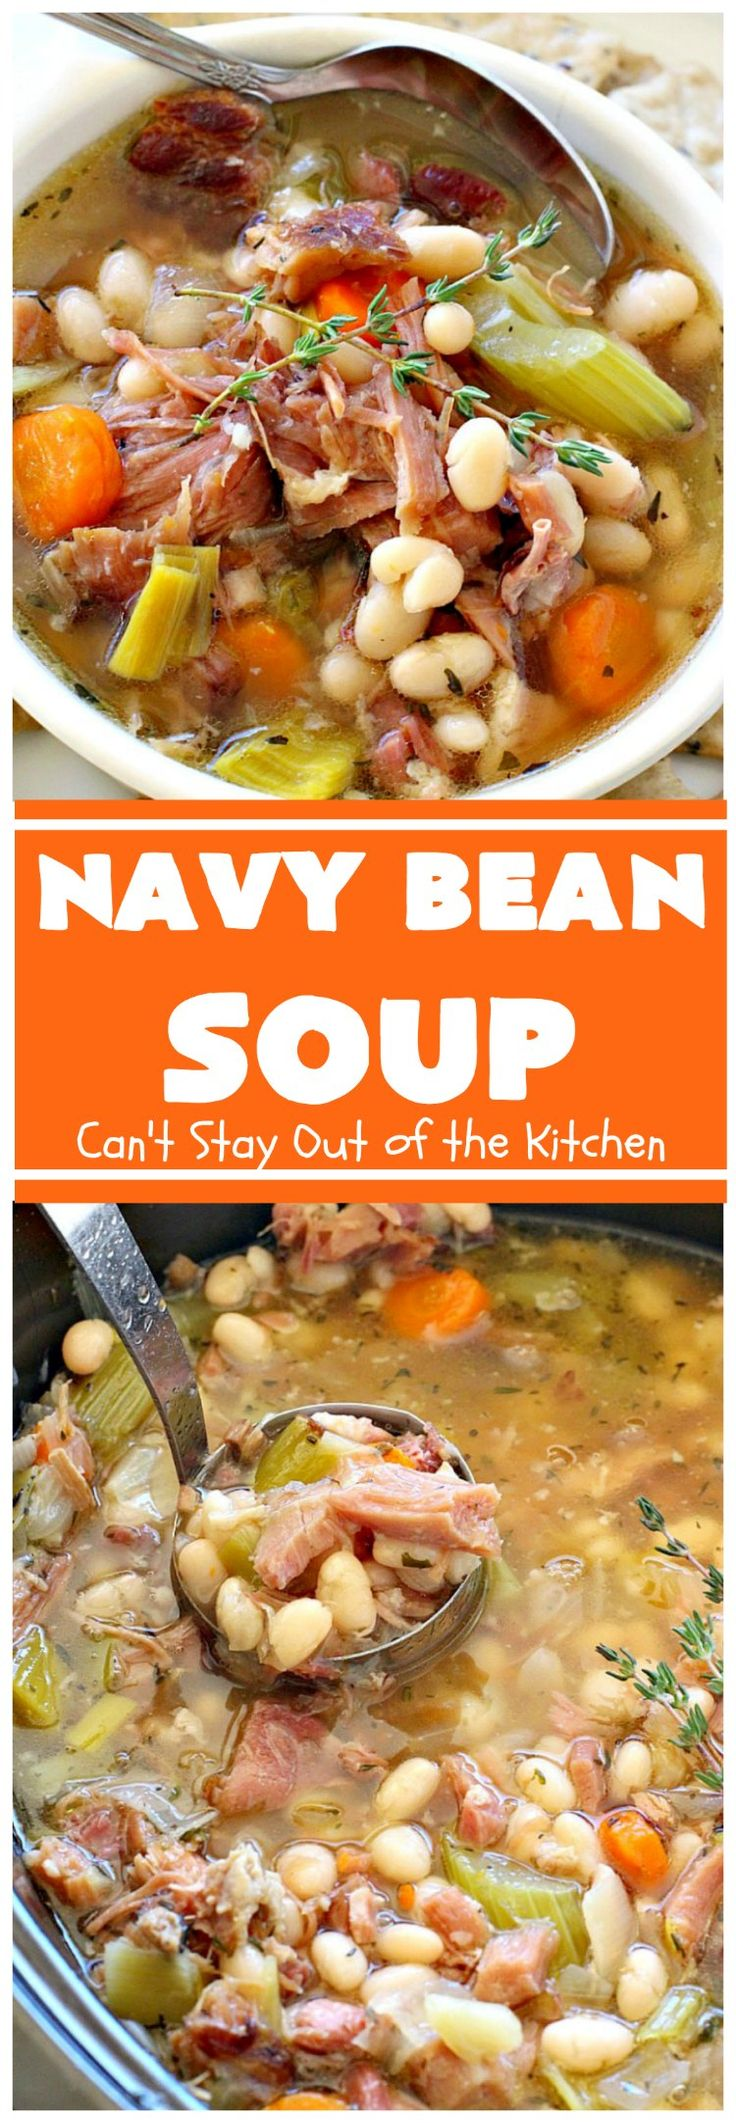 Navy Bean Soup - this easy #crockpot recipe is a terrific way to use up leftover #ham from the #holidays. Totally filling & satisfying.